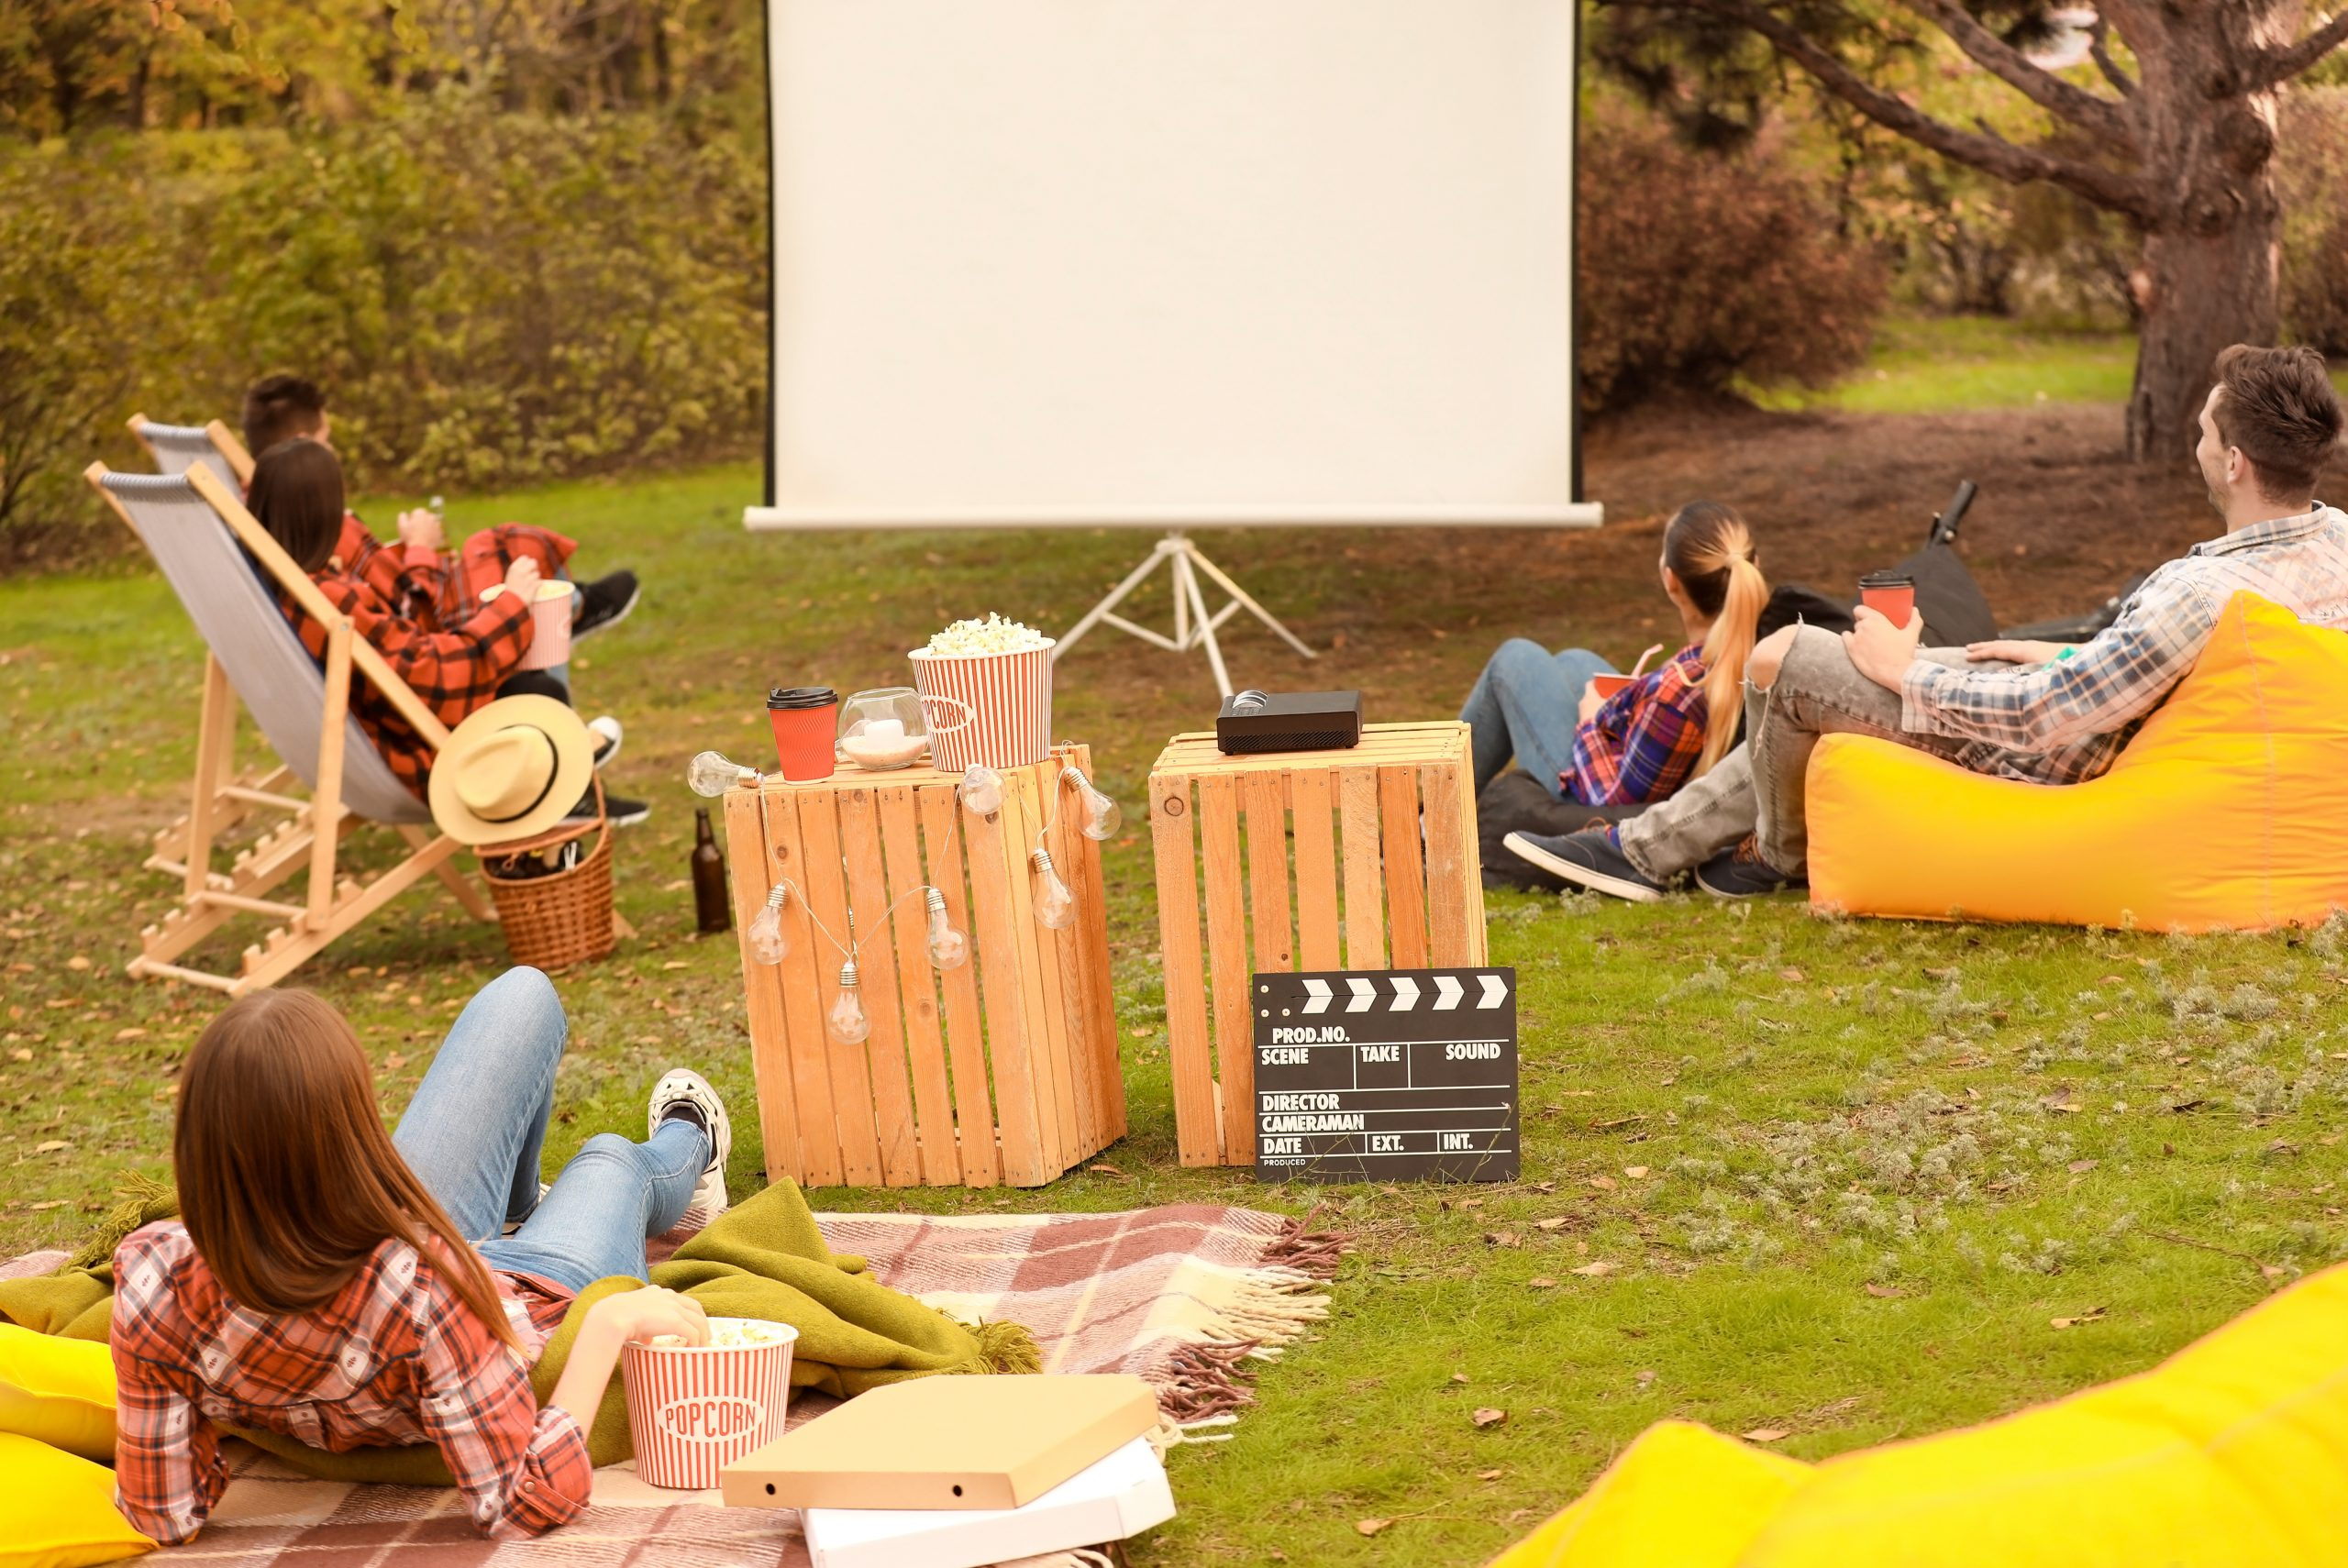 Tips for Planning an Outdoor Movie Night at Home